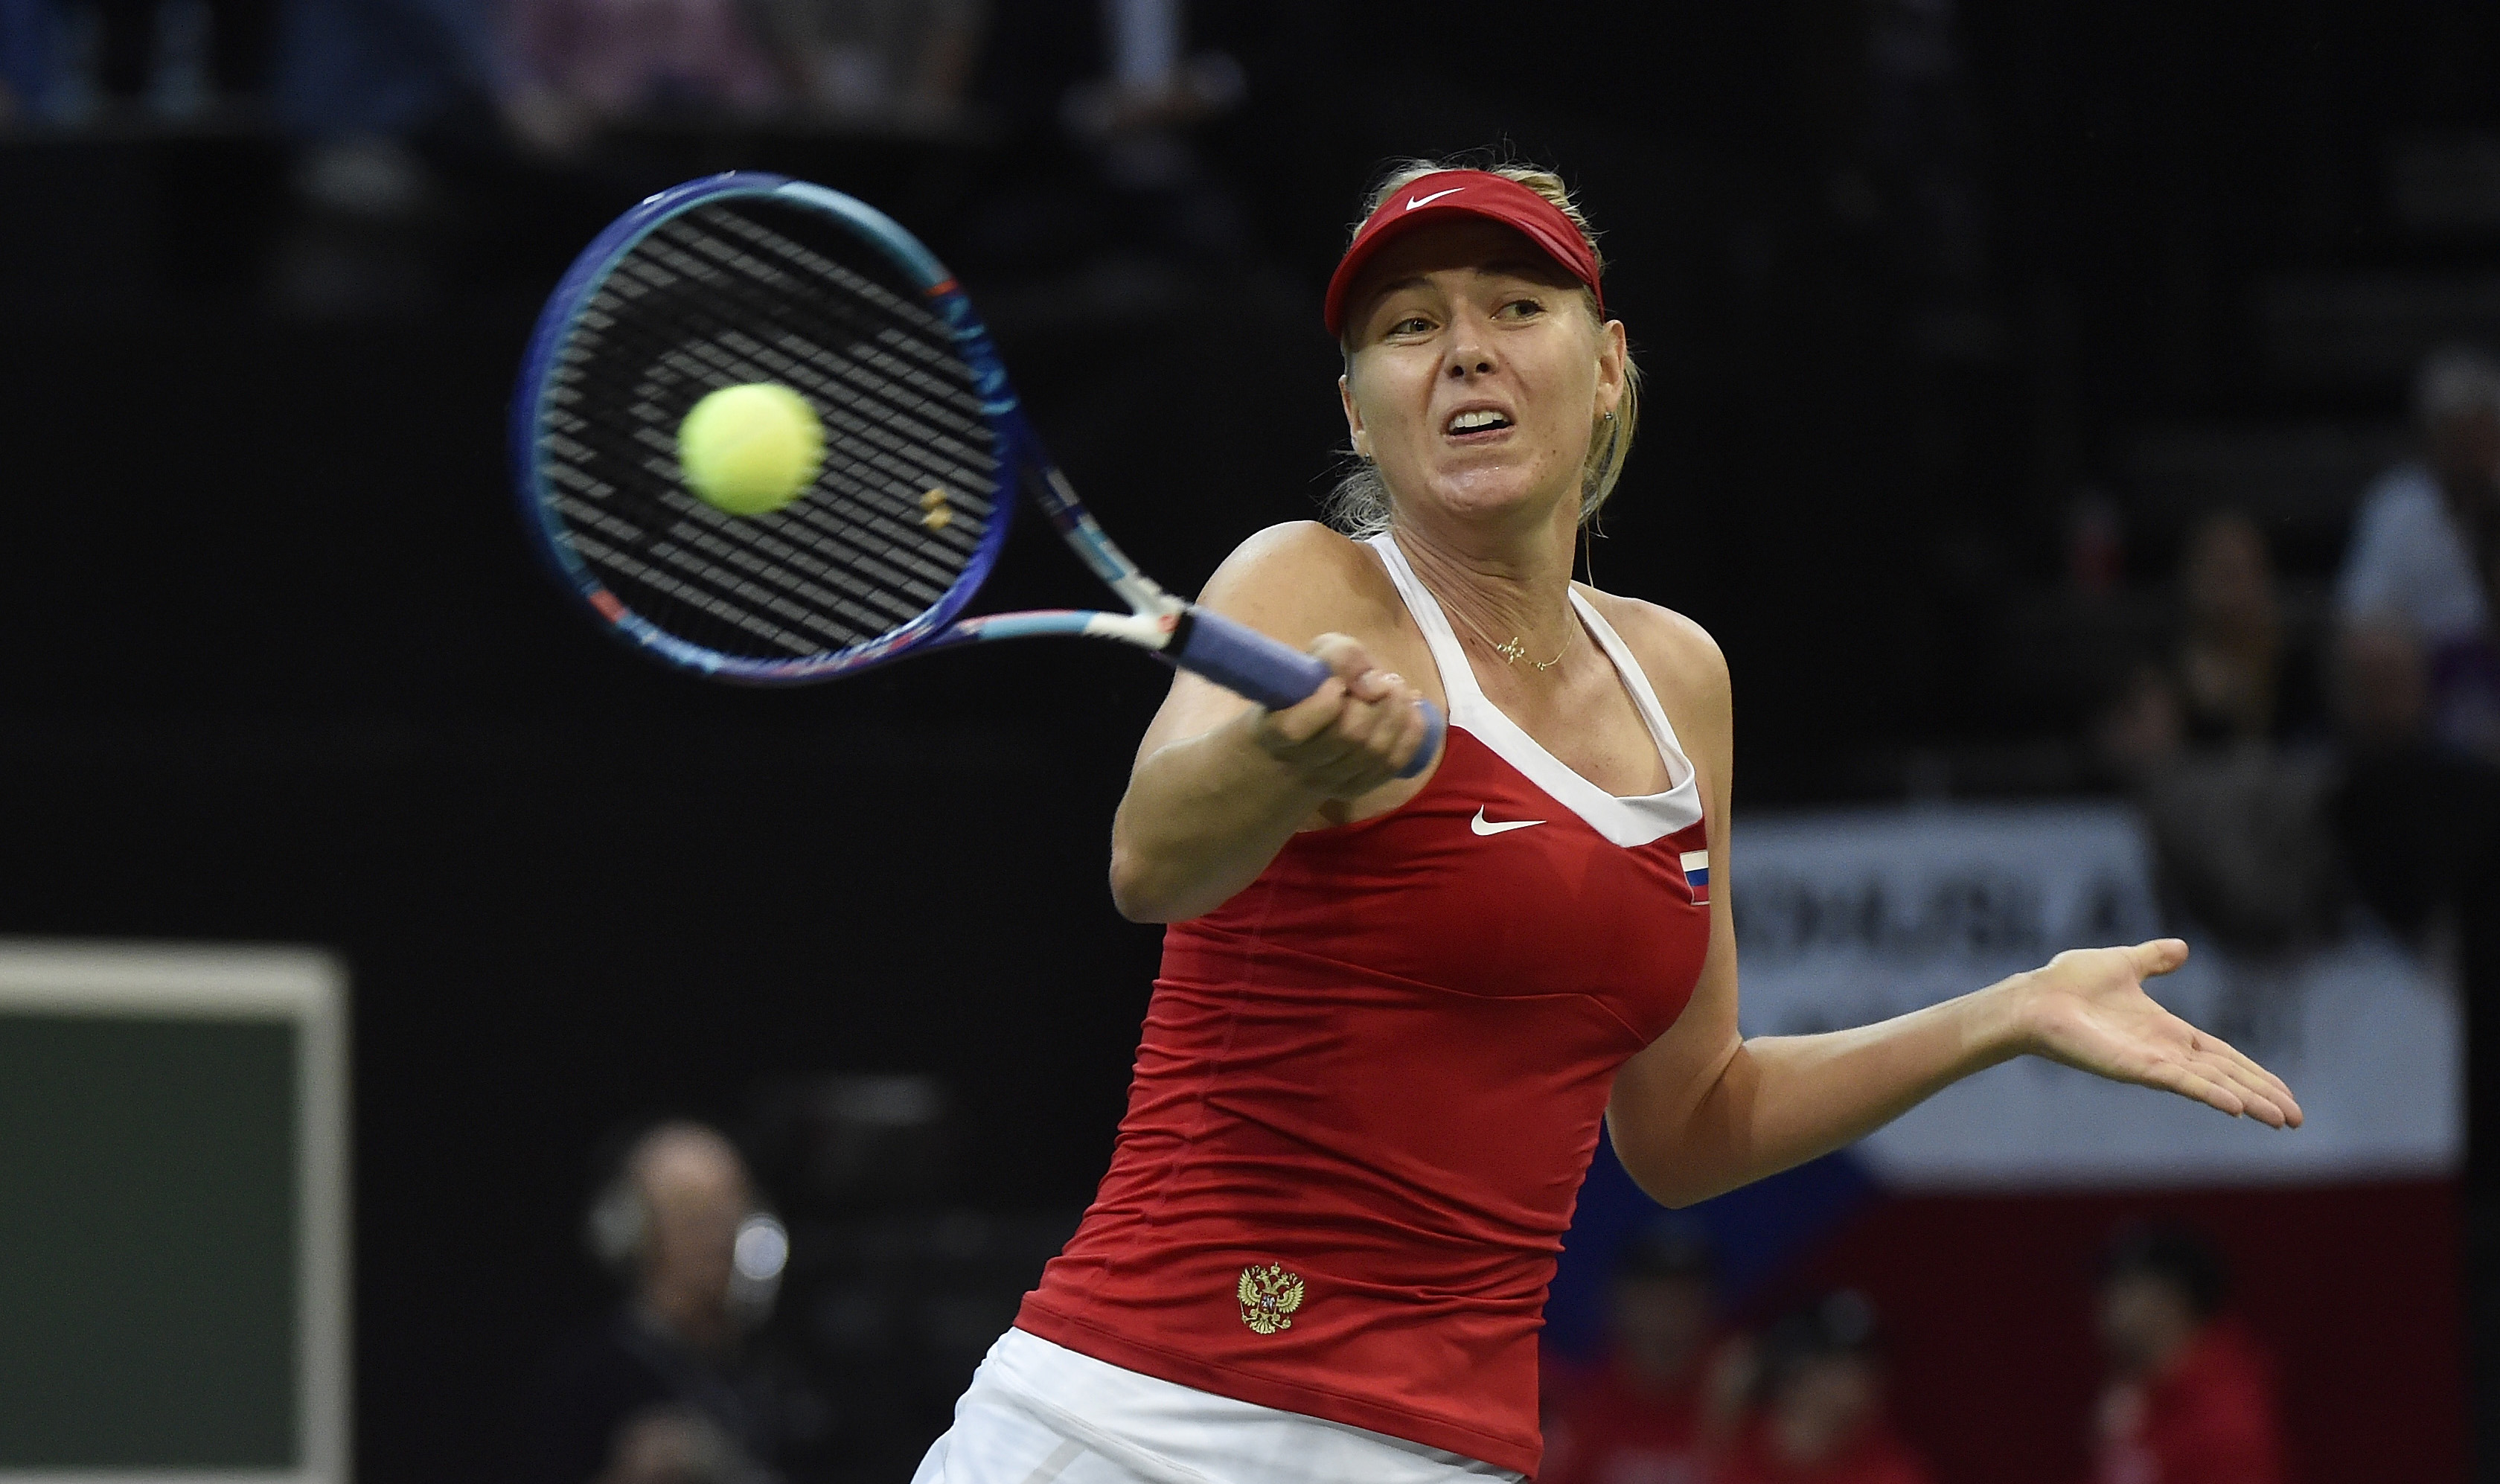 Maria Sharapova was in fine form against Karolina Pliskova